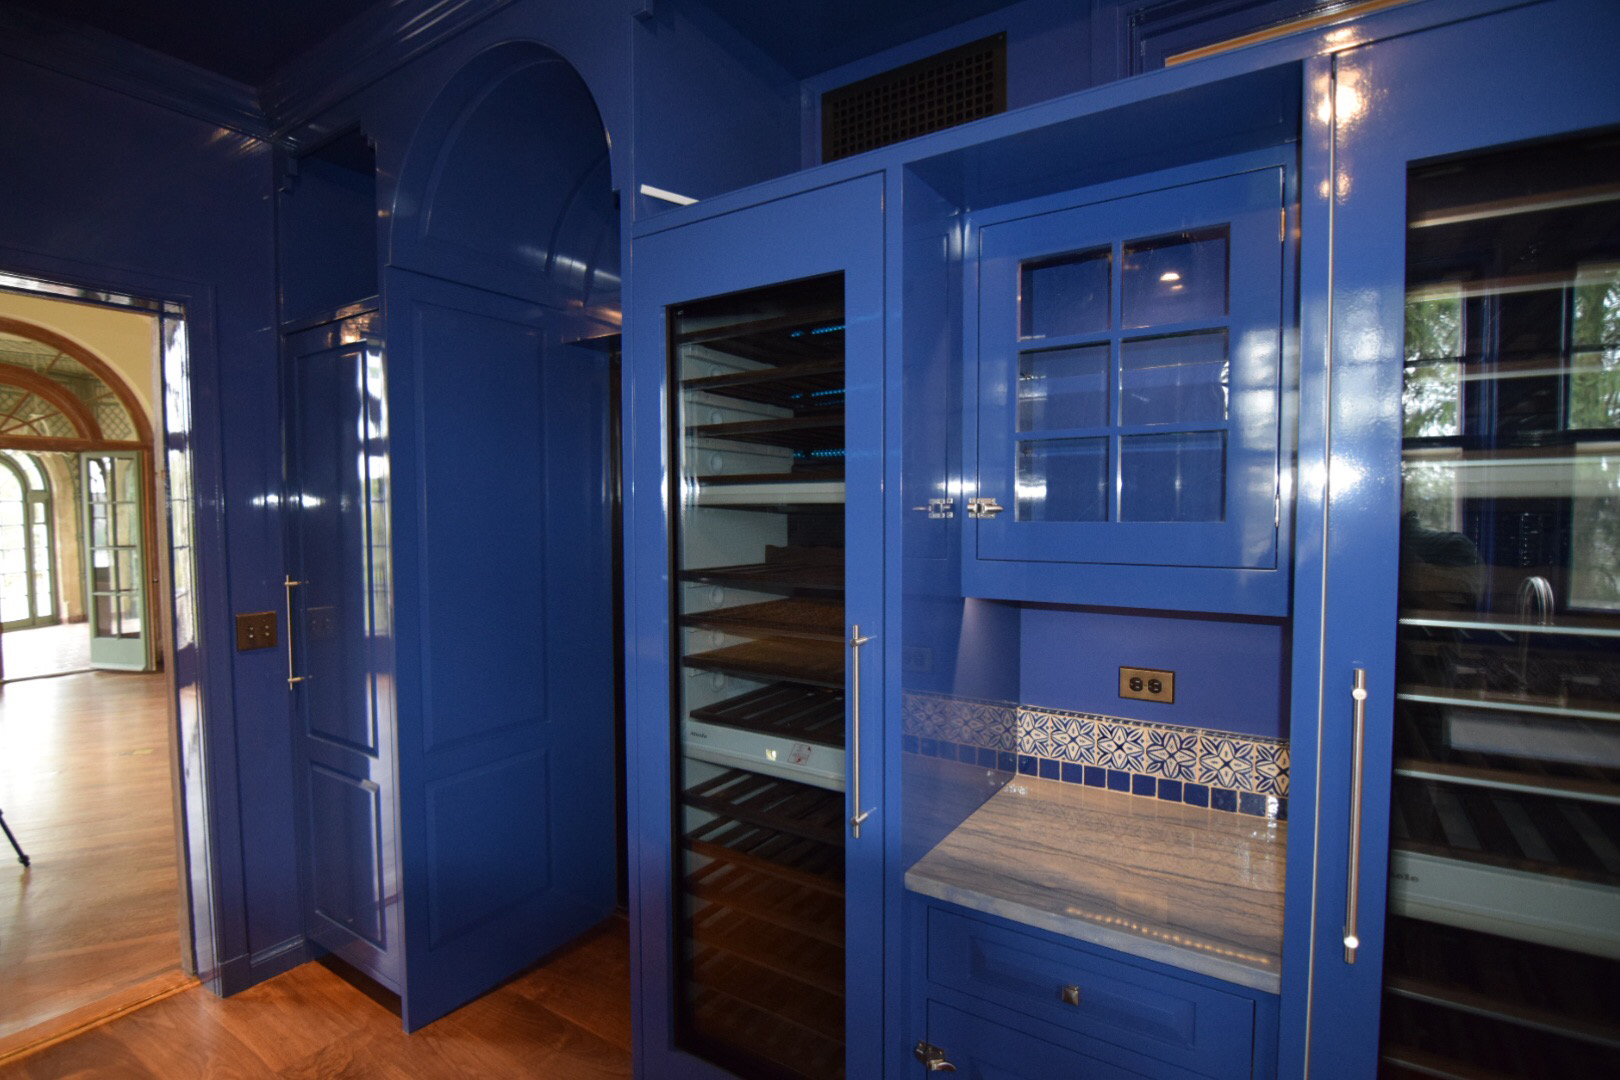 butlers-pantry-kitchen-face-frame-with-inset-raised-panel-hard-maple-doors-and-high-gloss-finish-in-blue.jpg